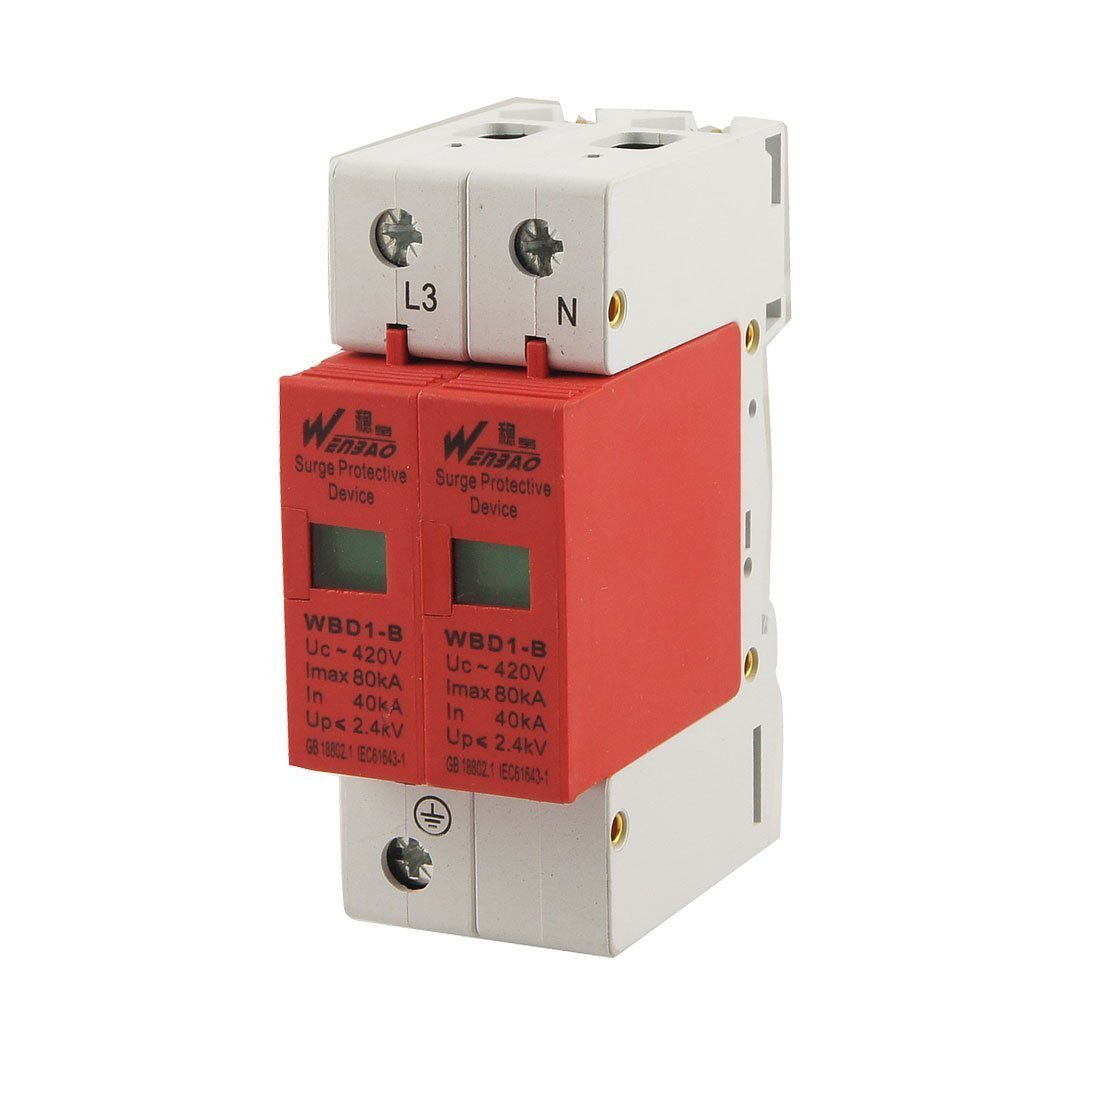 Baomain Surge Protection Device Arrester WBD1-2P AC 420V 80KA Max Current 40KA In 1P+N Din Rail Mount